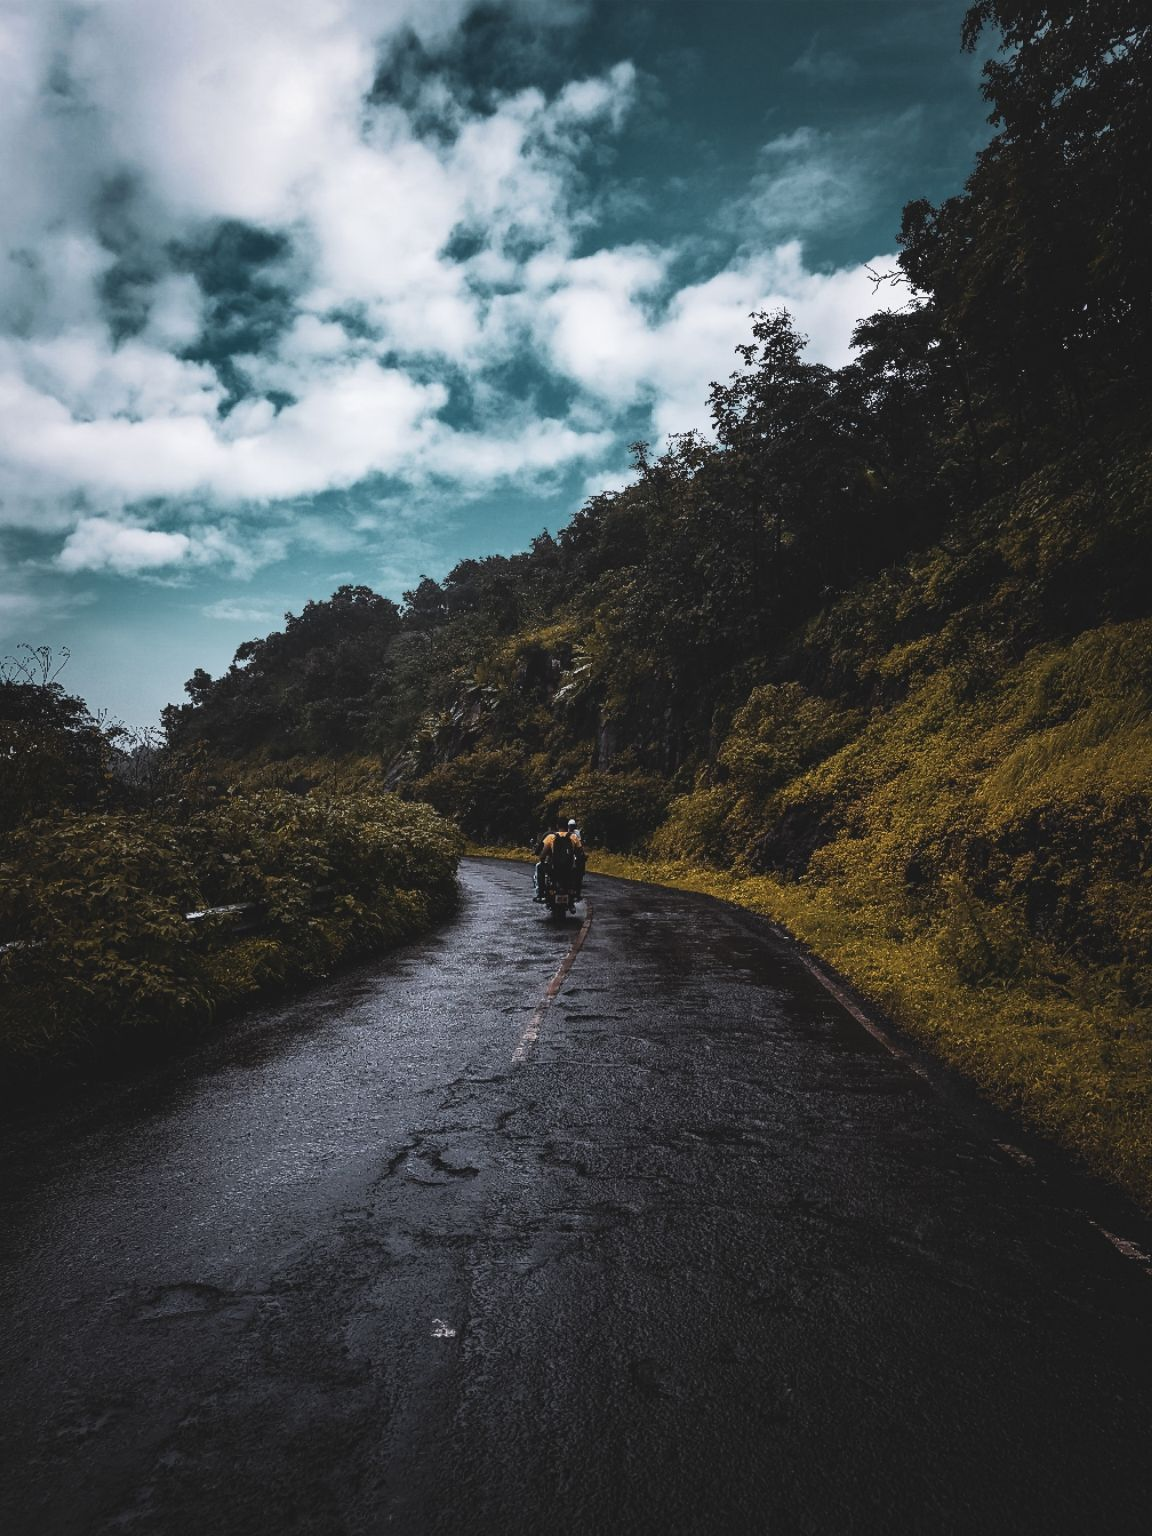 Photo of Sinhgad Road By Sandeep Nagargoje